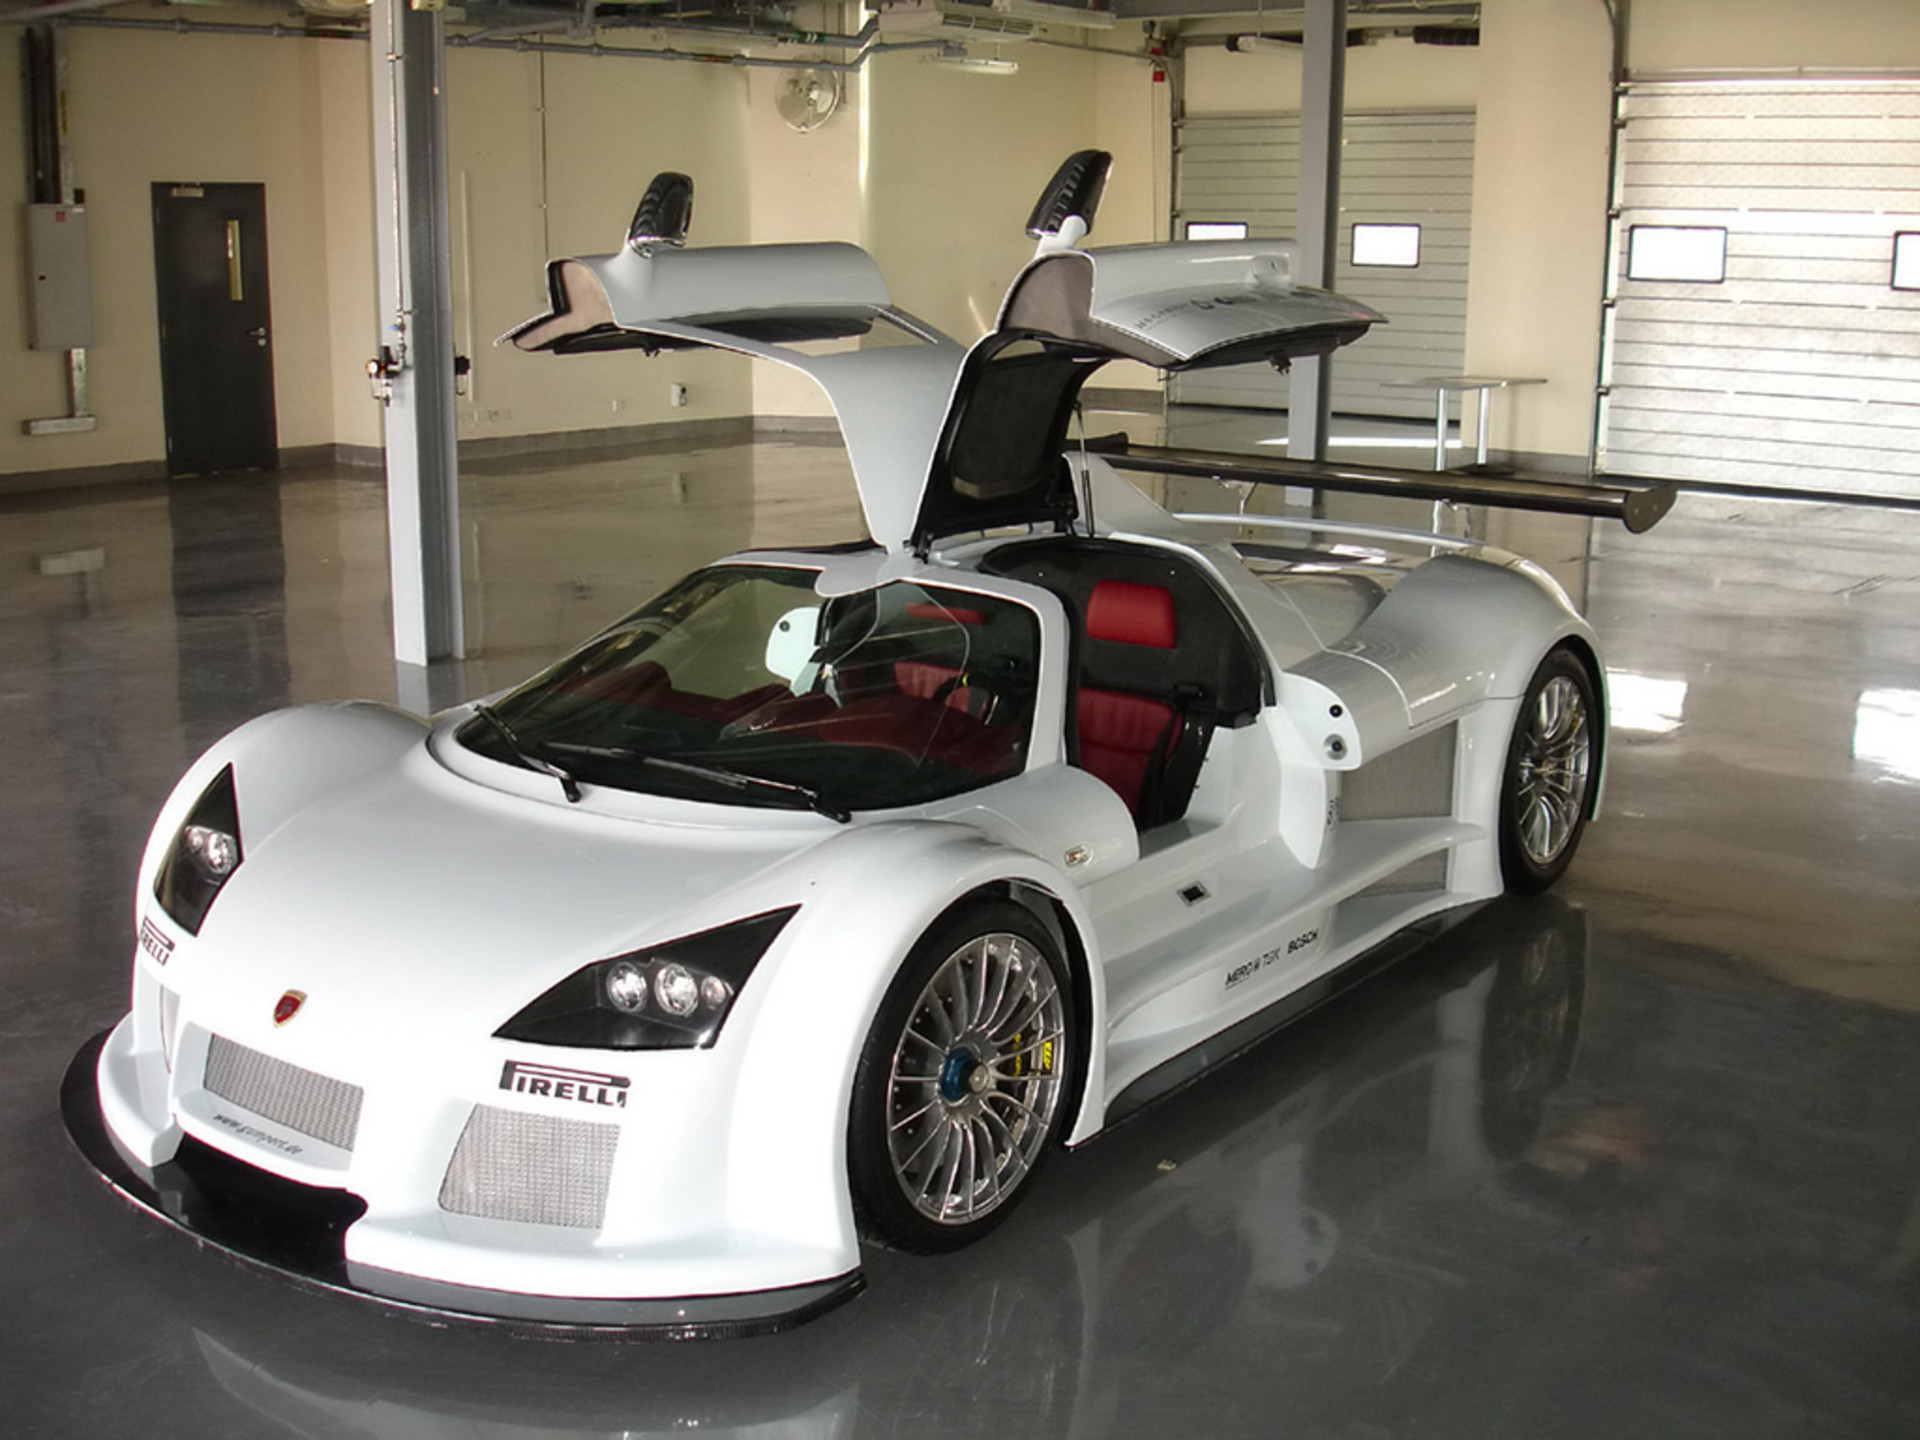 Gumpert Apollo Doors & Gumpert Apollo Doors - Top 50 Whips